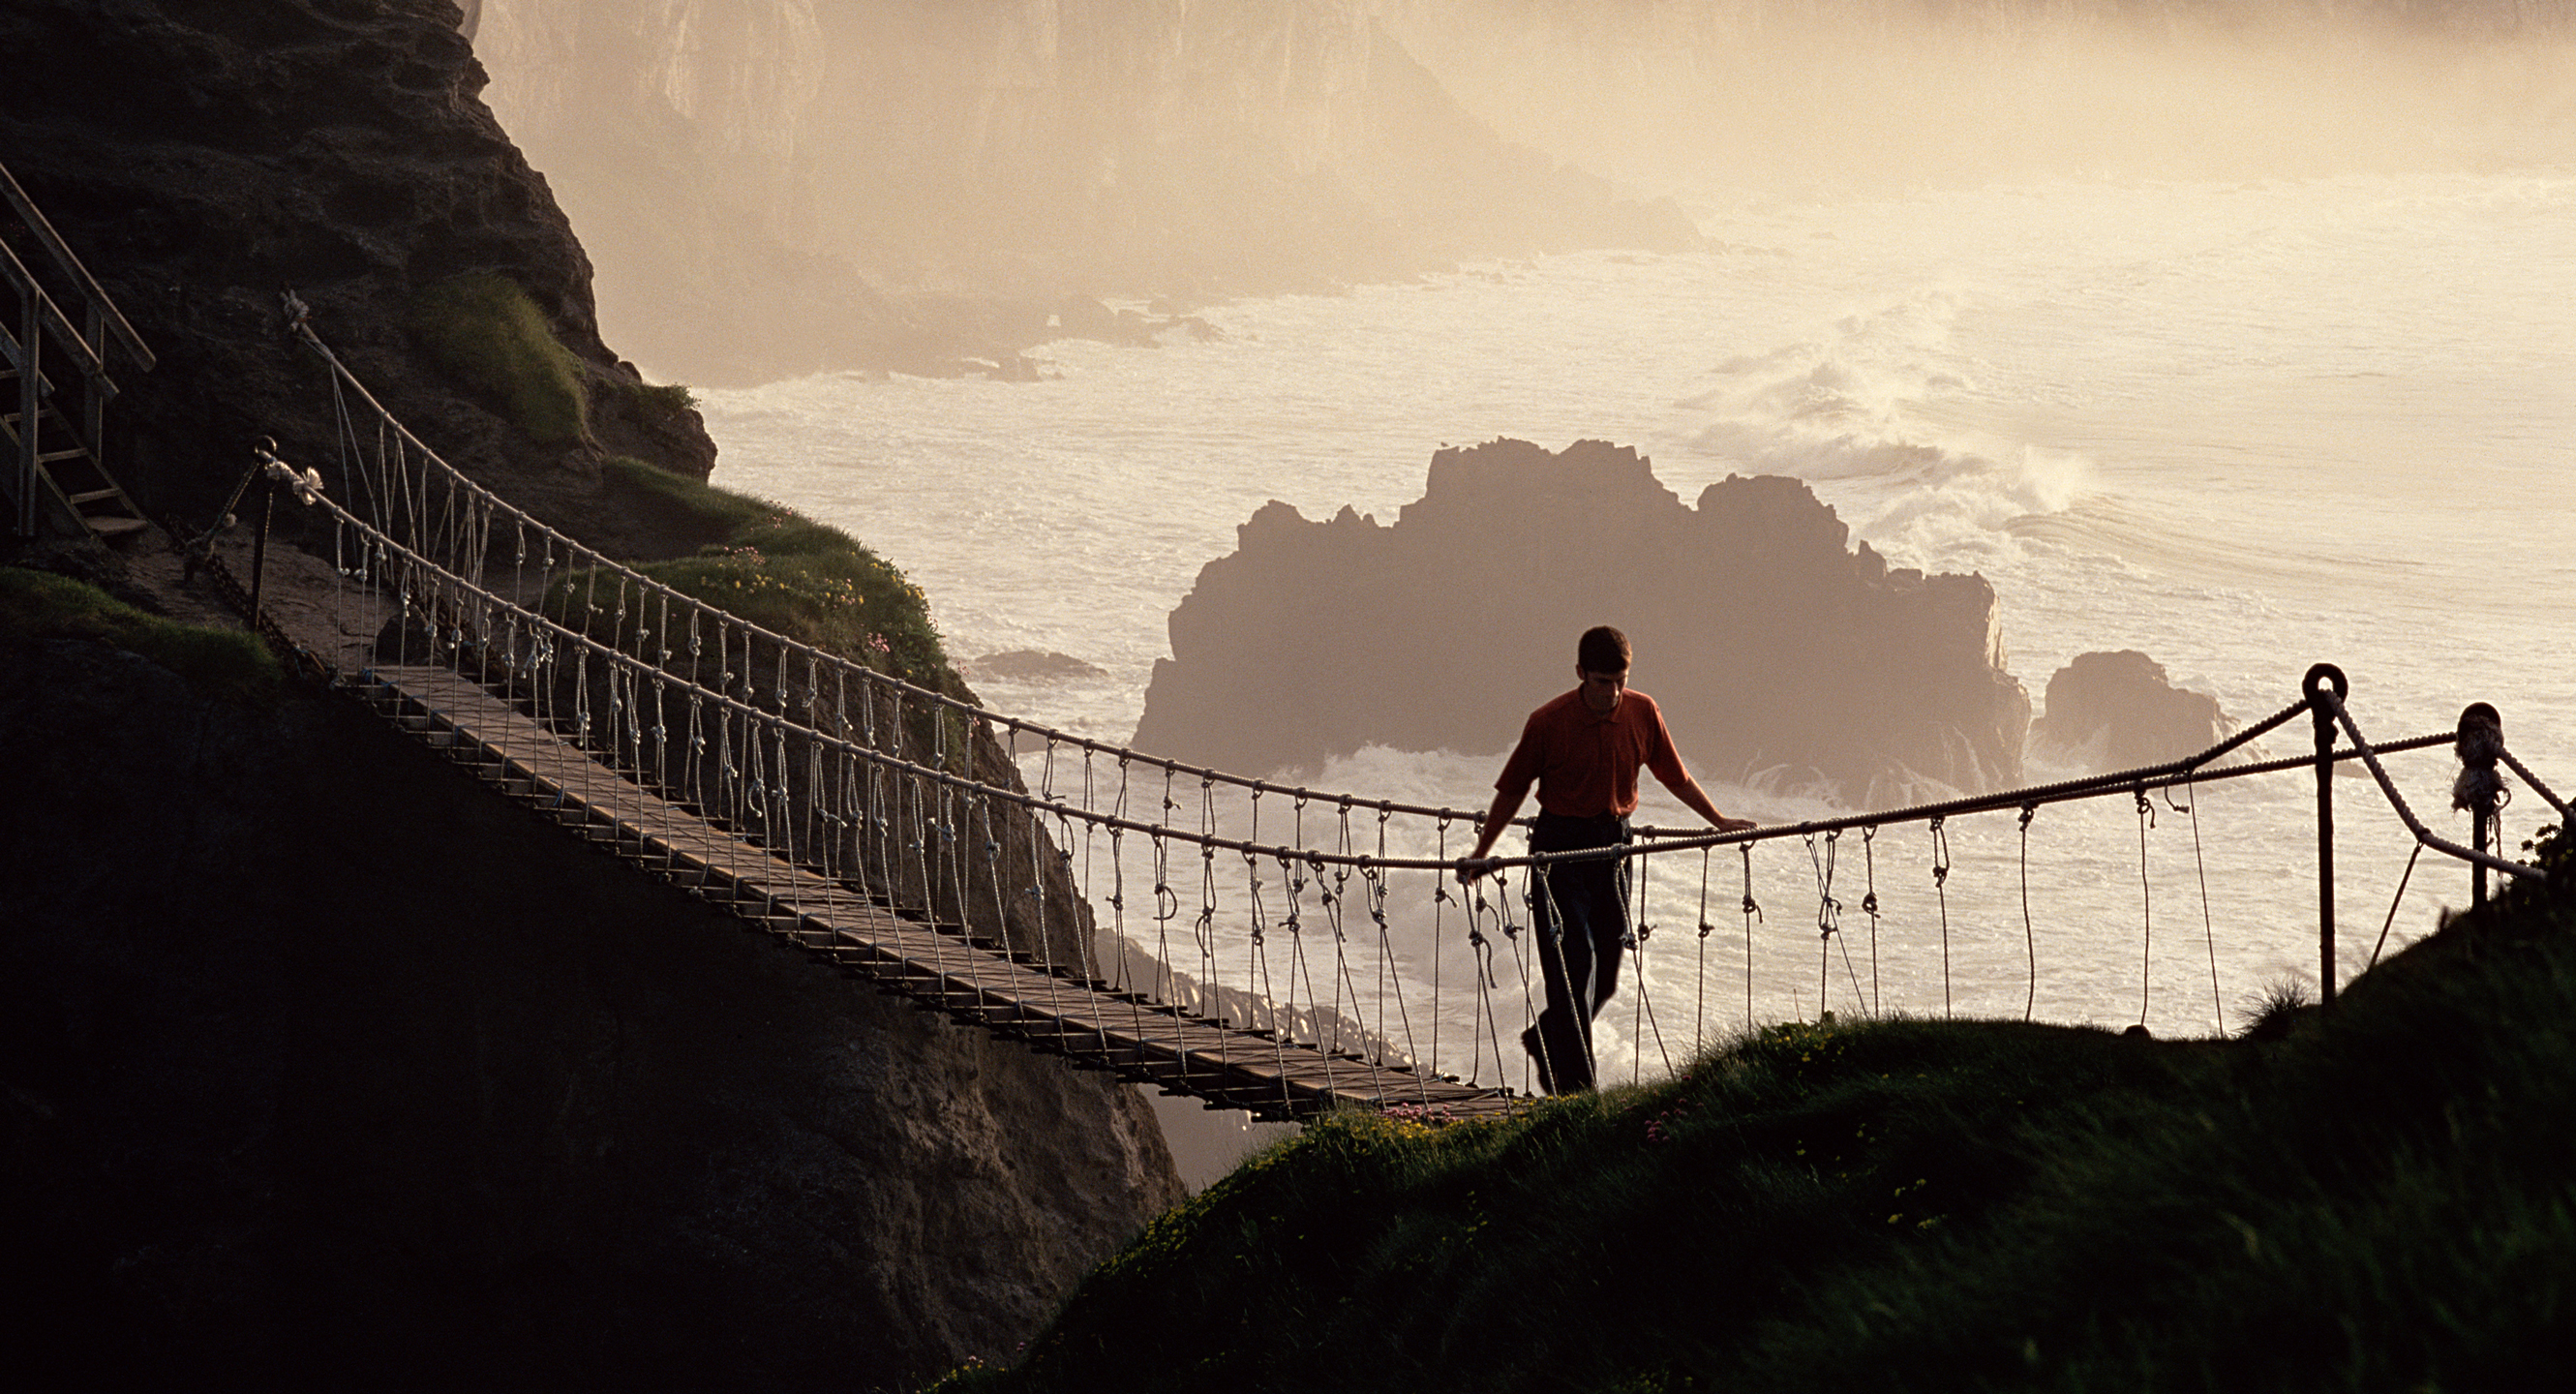 An Essential Ireland guest crosses the Carrick-a-rede rope bridge on one of our True North Tours